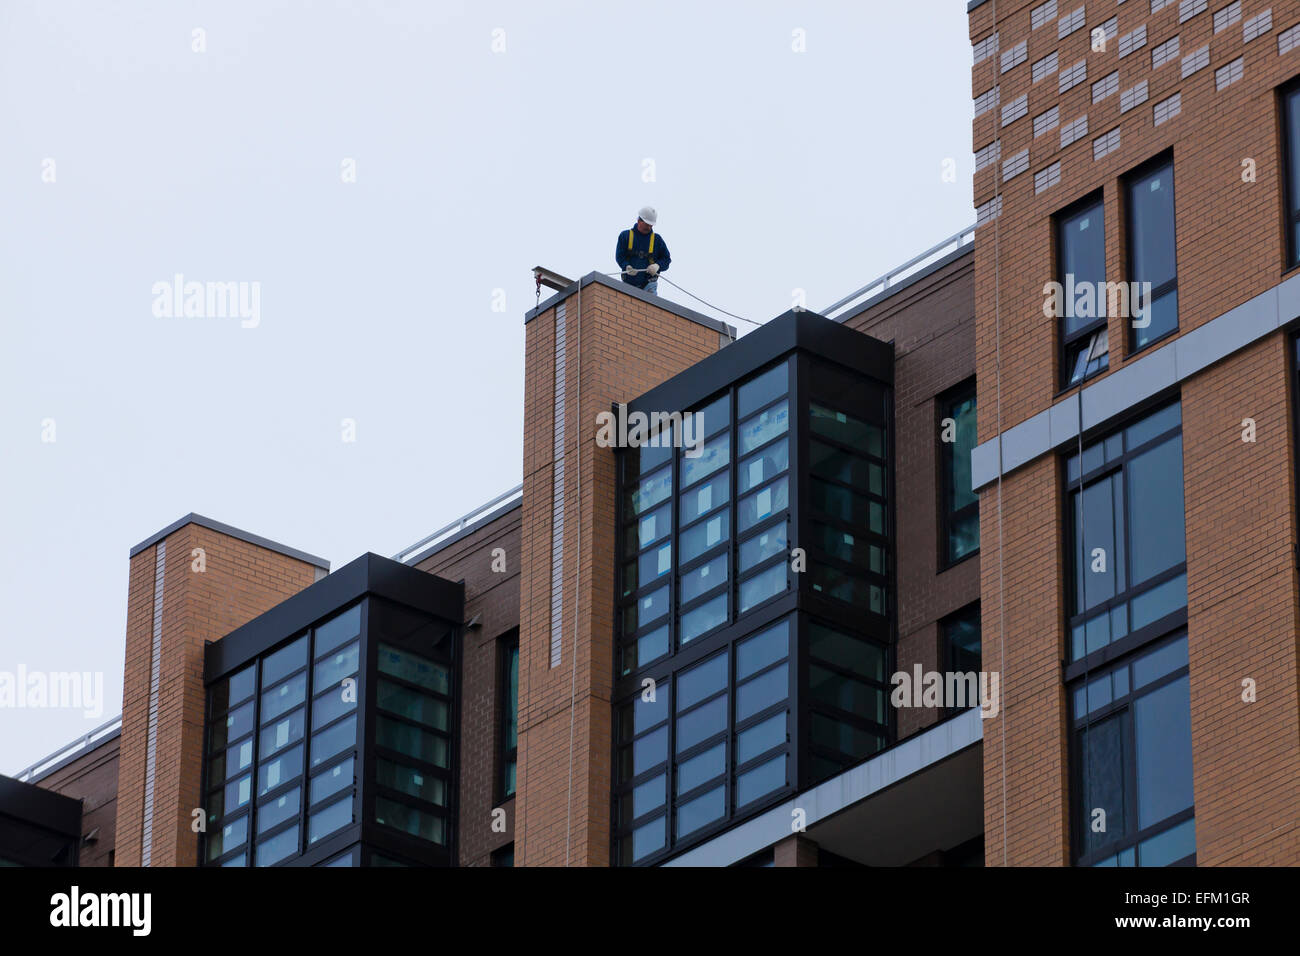 Man working on ledge atop a highrise building - USA - Stock Image